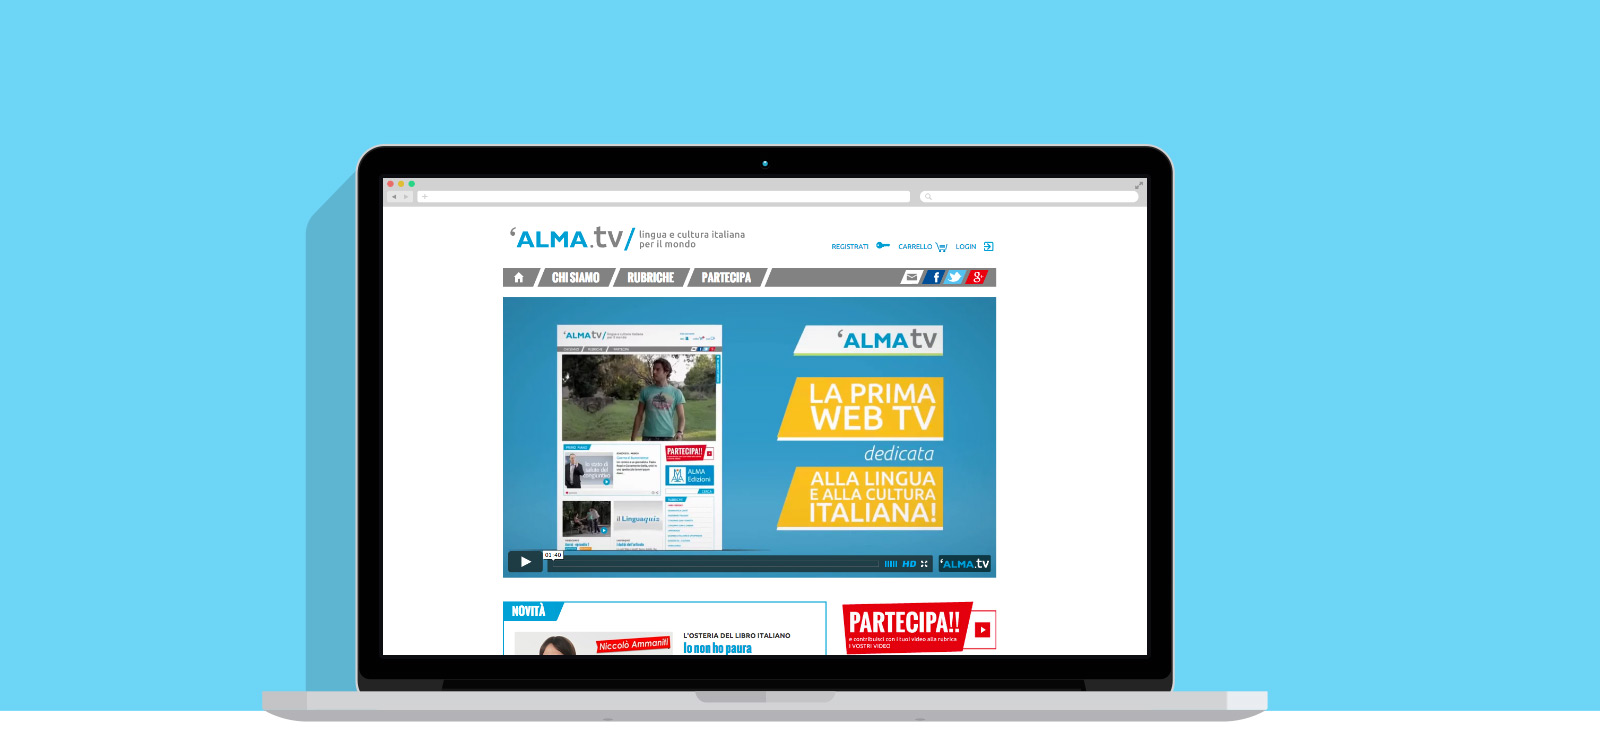 AlmaTV website on laptop